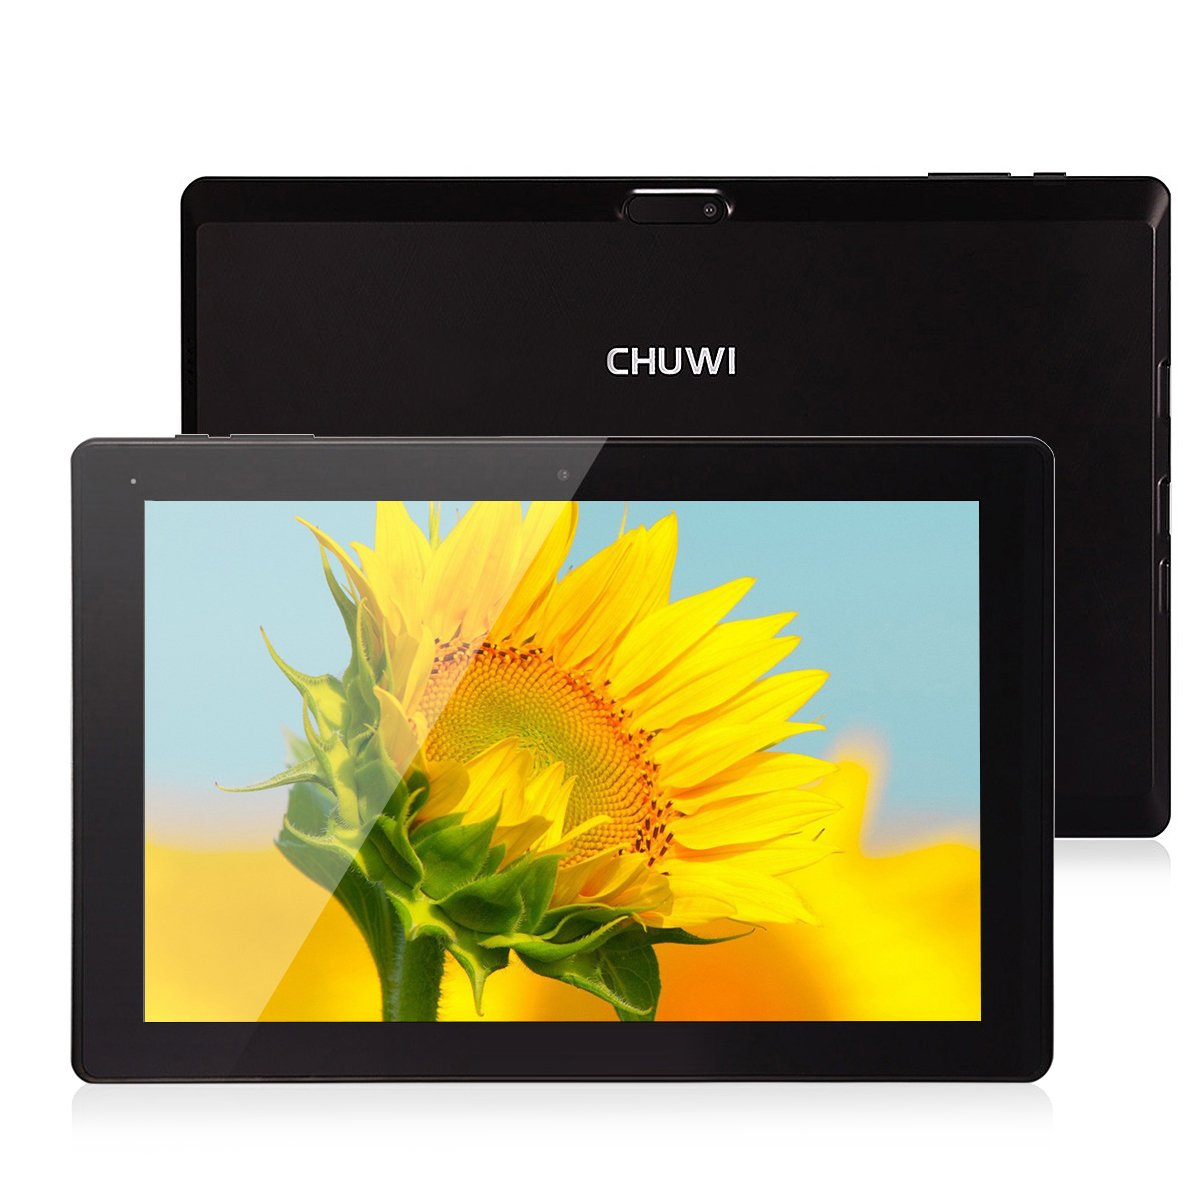 CHUWI Hi10 Tablet PC 10.1'' IPS 1920 x 1200 Dual OS Windows 10 & Android 5.1 4GB/64GB Intel Cherry Trail Z8350 64bit Quad Core Dual Cams Support Wifi Type-C TF Card Extend by CHUWI